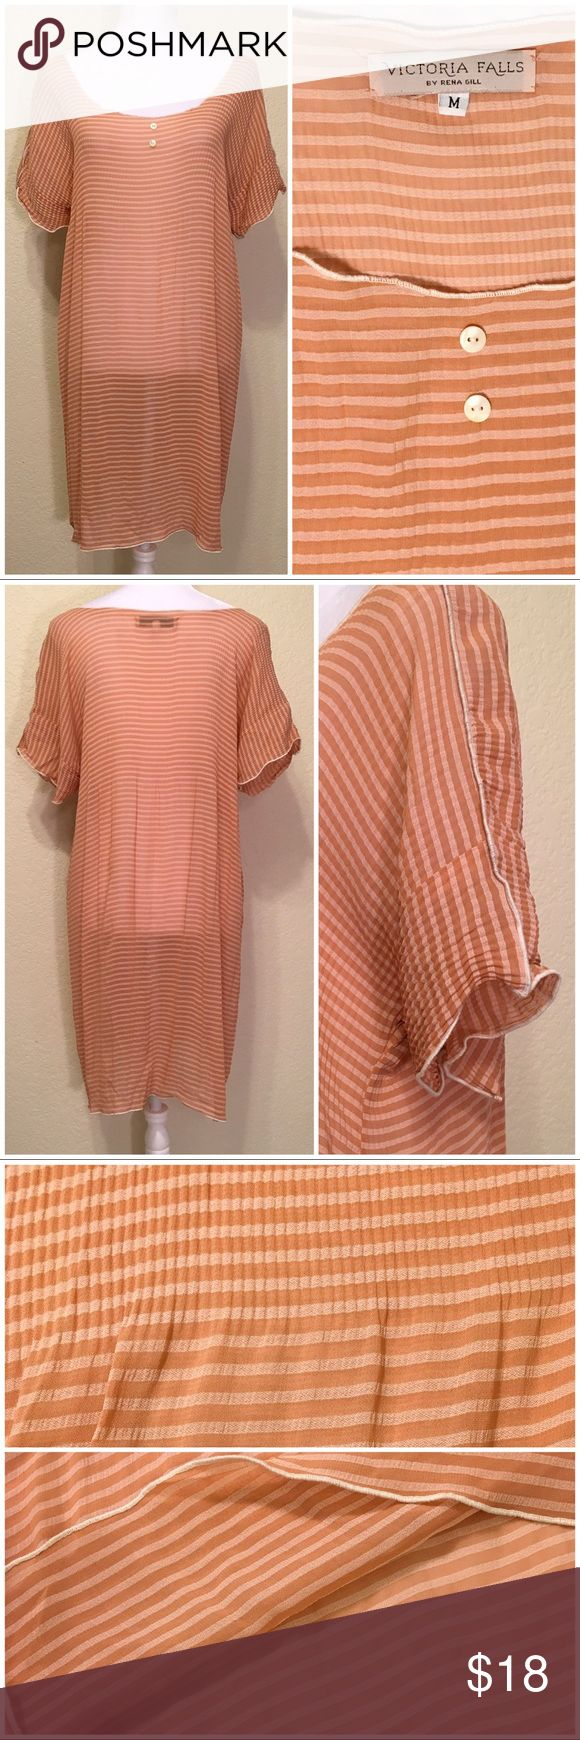 Selling this Apricot Striped Dress by Rena Gill on Poshmark! My username is: 73honeybees. #shopmycloset #poshmark #fashion #shopping #style #forsale #Victoria Falls by Rena Gill #Dresses & Skirts